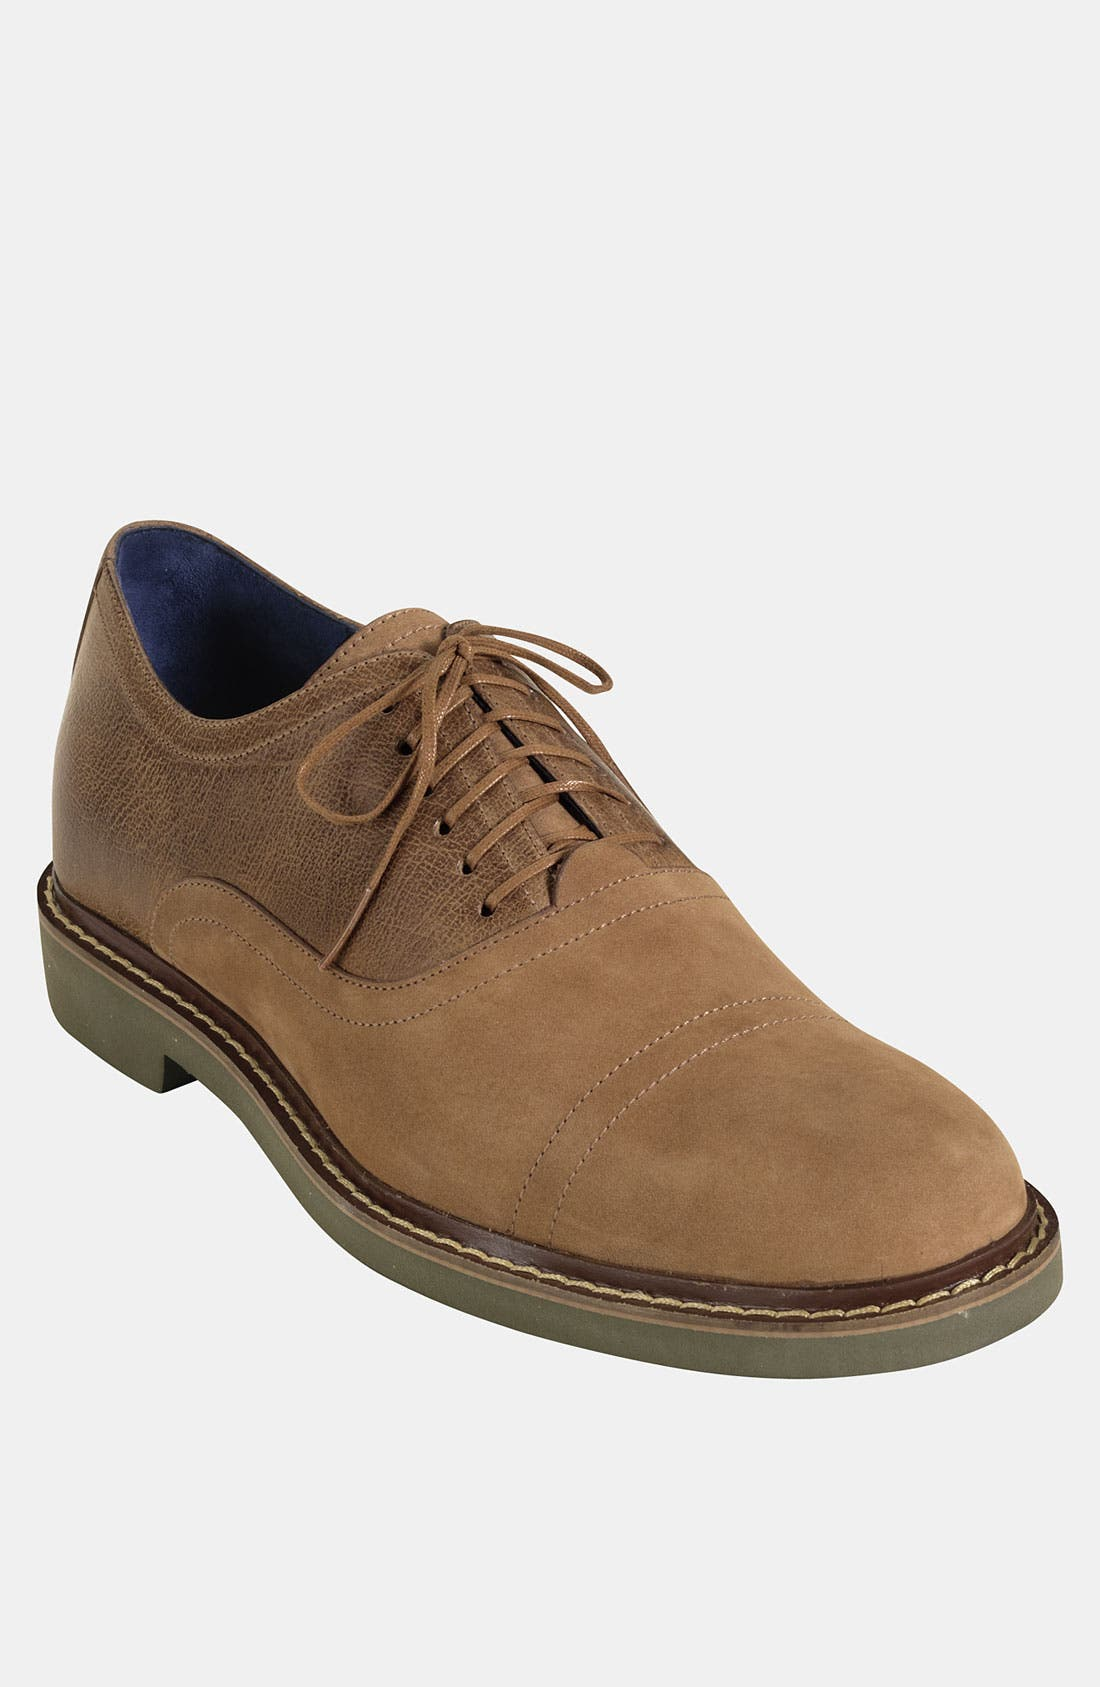 Alternate Image 1 Selected - Cole Haan 'Air Harrison' Cap Toe Oxford   (Men)